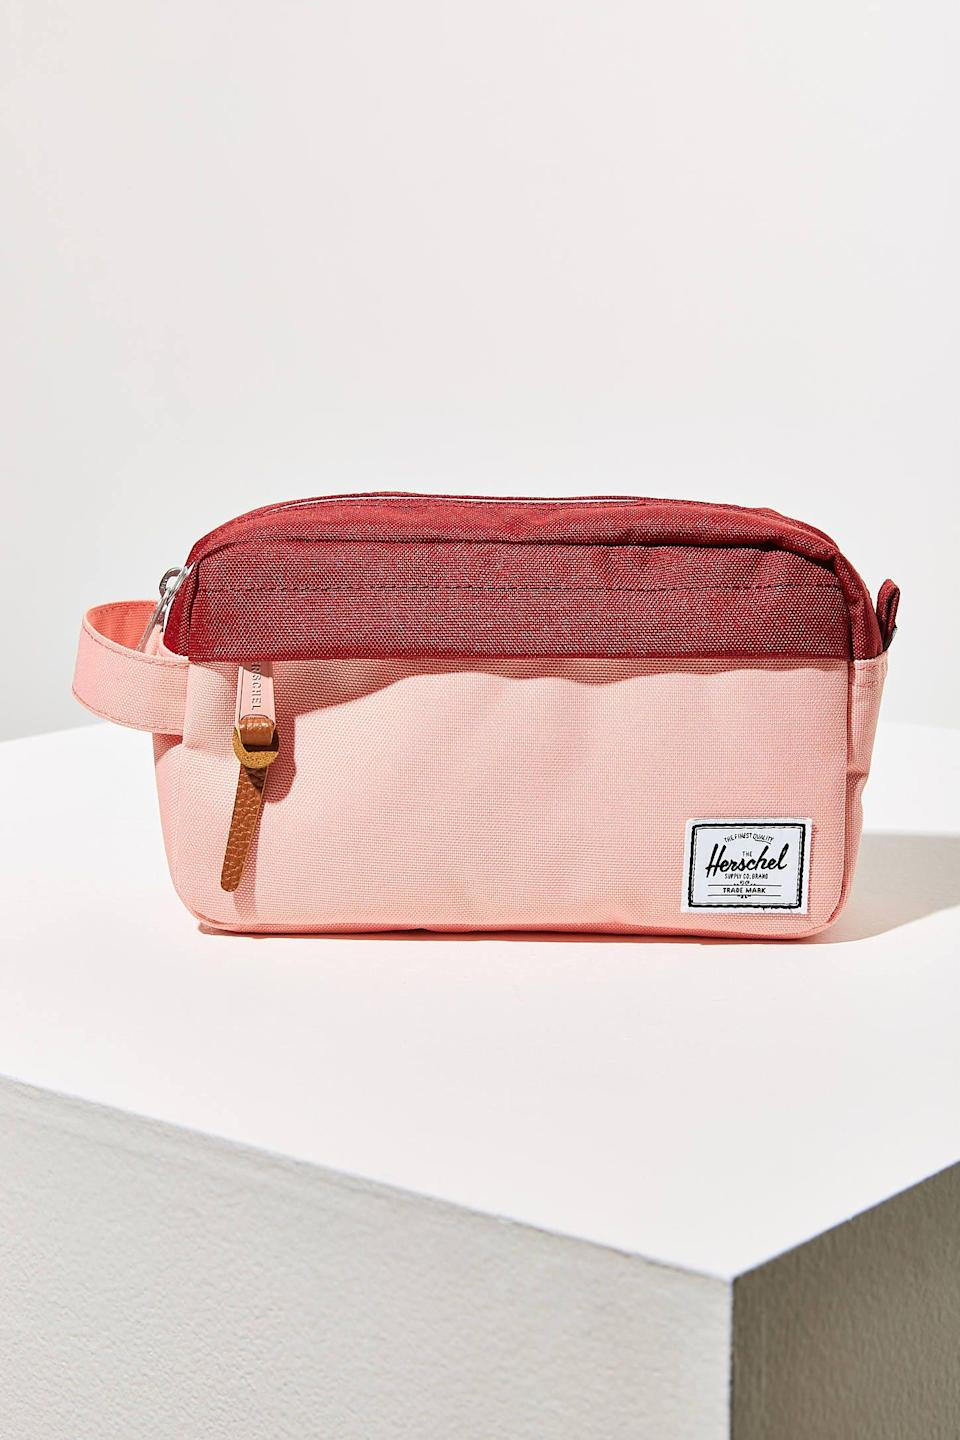 "<p><strong>Herschel Supply Co.</strong></p><p>urbanoutfitters.com</p><p><strong>$30.00</strong></p><p><a href=""https://go.redirectingat.com?id=74968X1596630&url=https%3A%2F%2Fwww.urbanoutfitters.com%2Fshop%2Fherschel-supply-co-chapter-carry-on-travel-kit&sref=https%3A%2F%2Fwww.womenshealthmag.com%2Fbeauty%2Fg32771189%2Fbest-makeup-bags%2F"" rel=""nofollow noopener"" target=""_blank"" data-ylk=""slk:Shop Now"" class=""link rapid-noclick-resp"">Shop Now</a></p><p>Known for their exceptional book bags, Herschel has your makeup storage needs covered too. This bag features zipper compartments throughout and a thick carrying strap for easier travel. </p>"